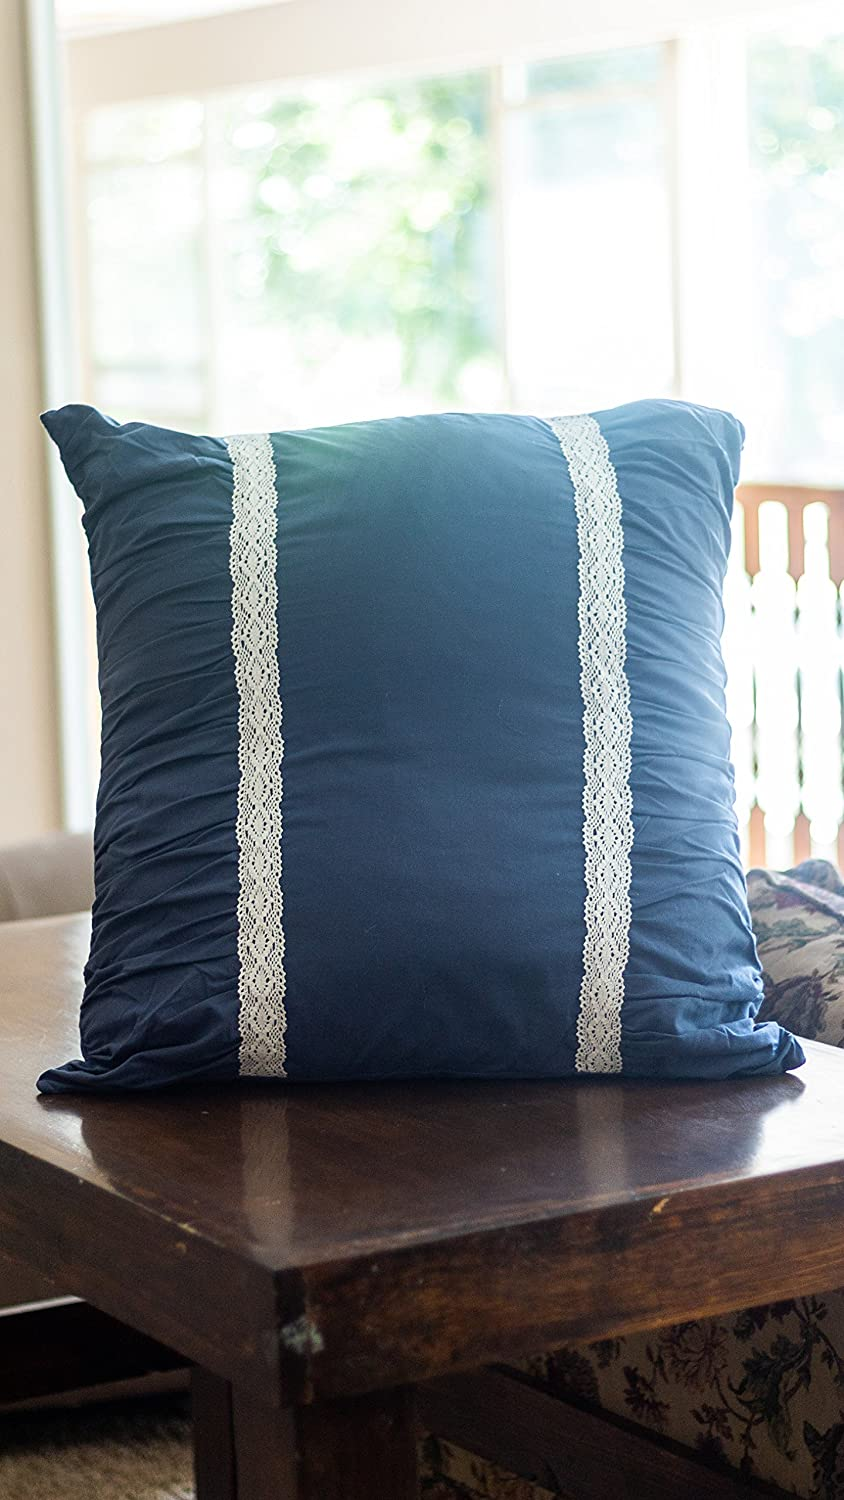 Soft Cotton Design 1 Sham Dark Blue Square Pillow Sham Fits 26 x 26 Euro Pillow